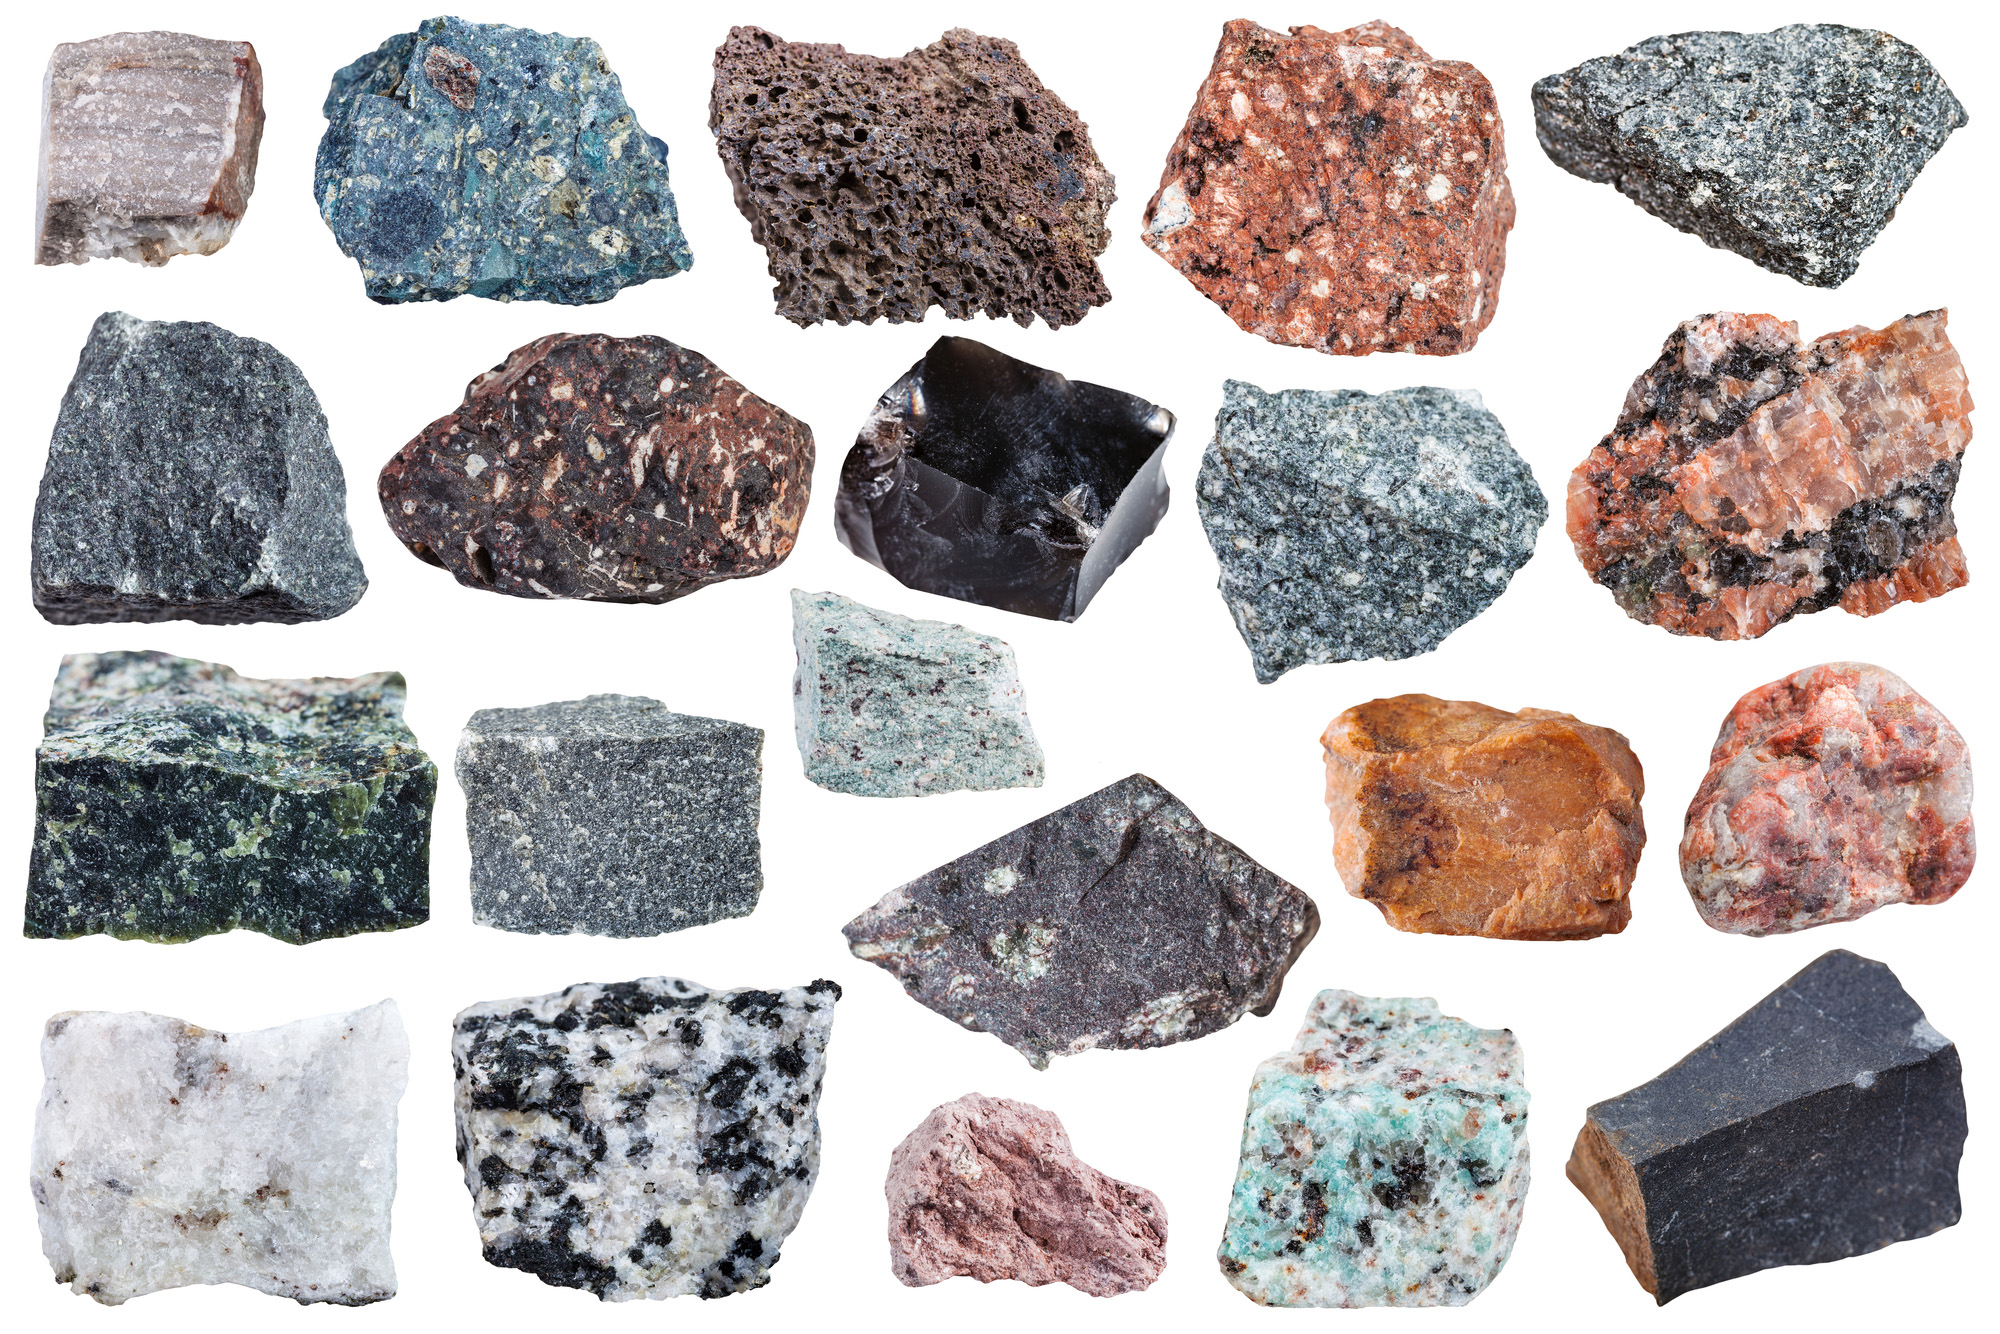 Collection of Igneous rock specimens-72 ppi